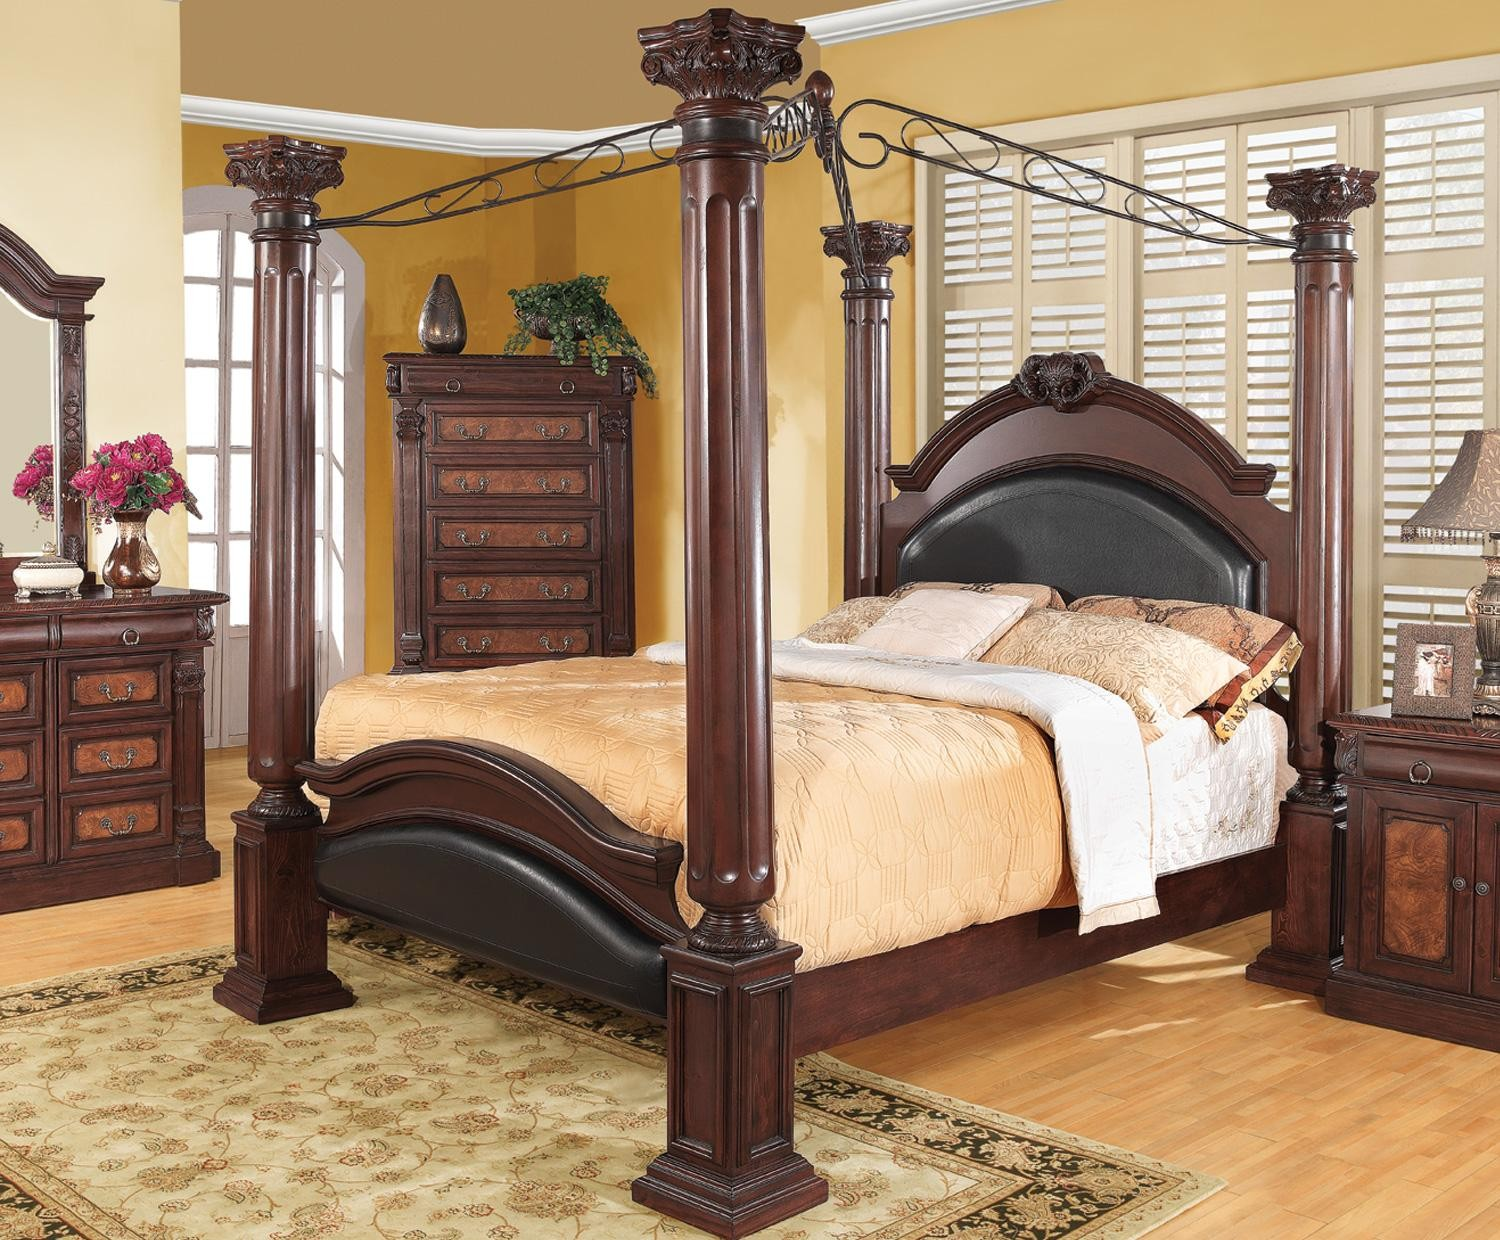 Grand Prado King Poster Bed from Coaster  202201KE    Coleman   Coaster Furniture  414081. Coaster Bedroom Furniture. Home Design Ideas